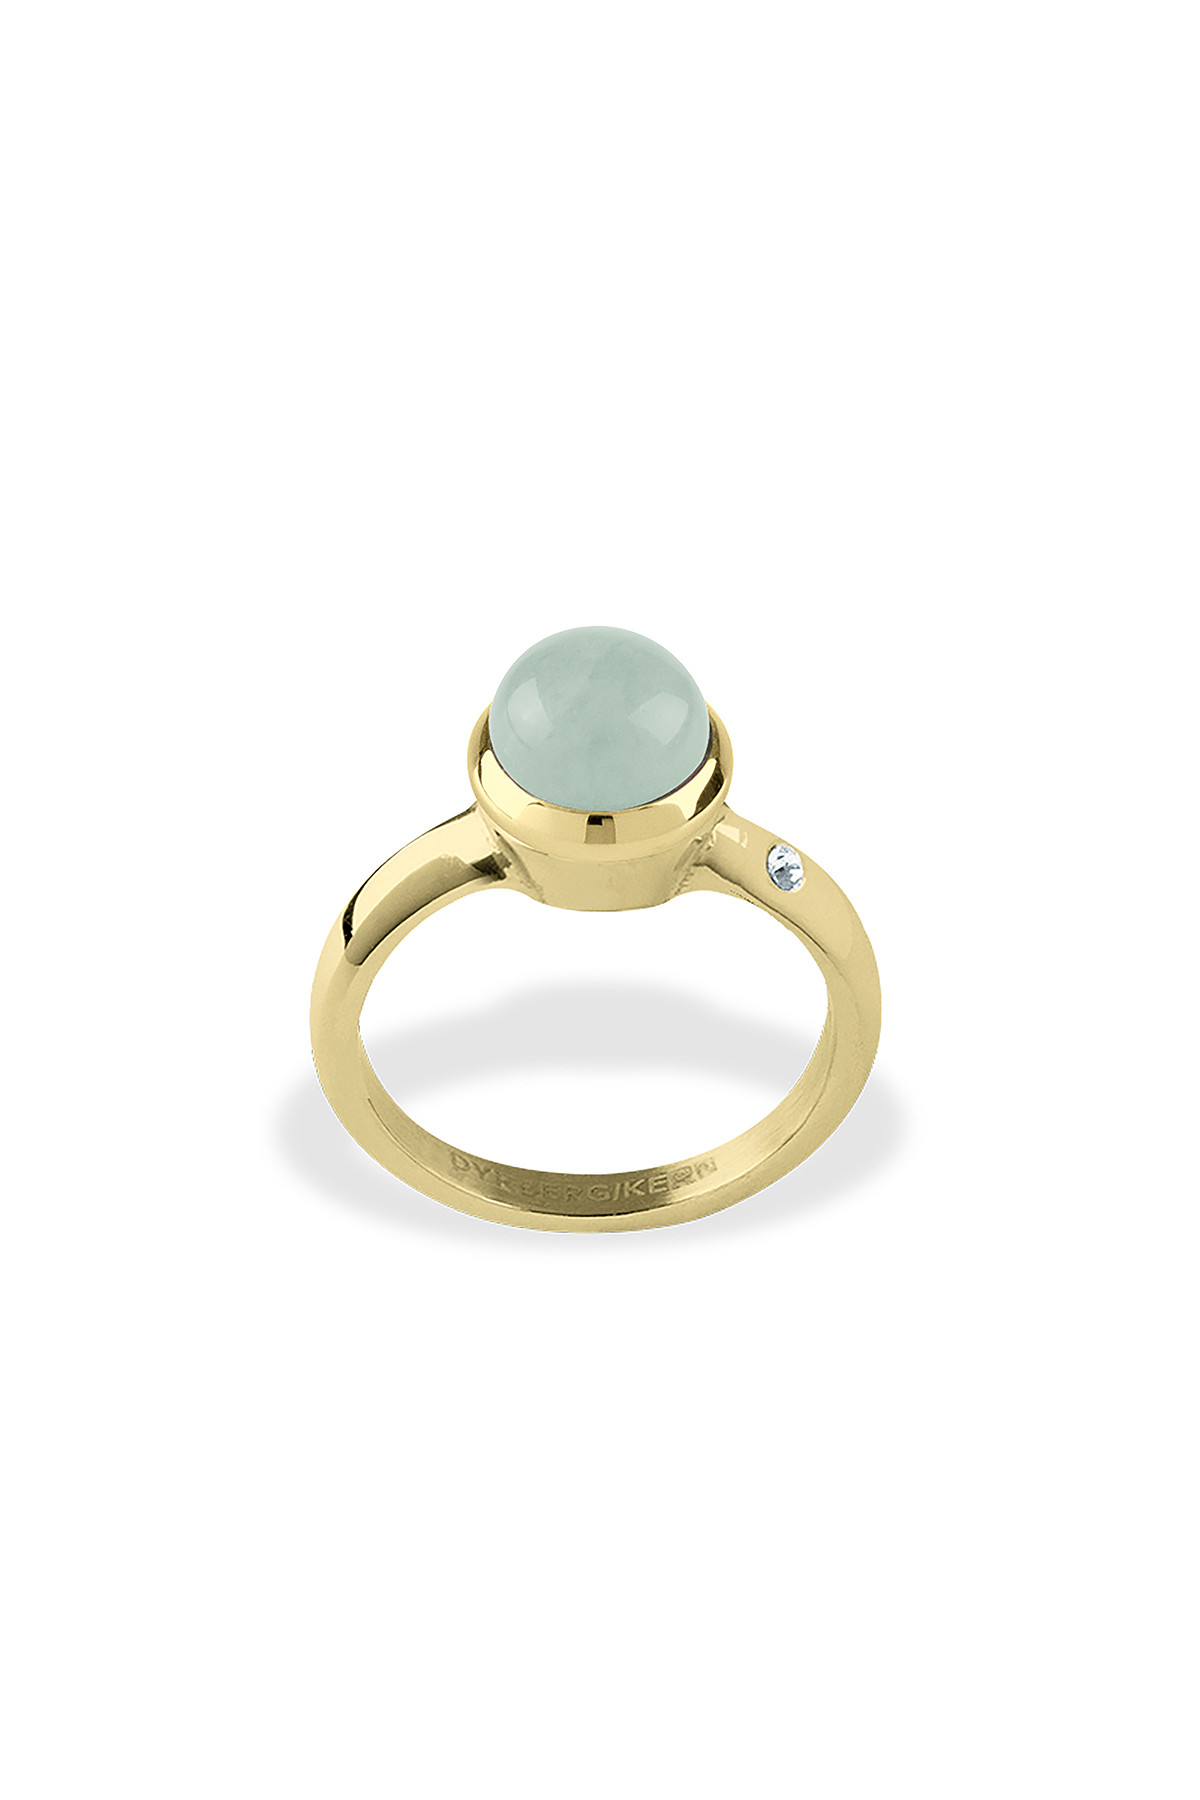 Image of DYRBERG/KERN BUDRING RING 352333 (Gold, Green, IIII/60)